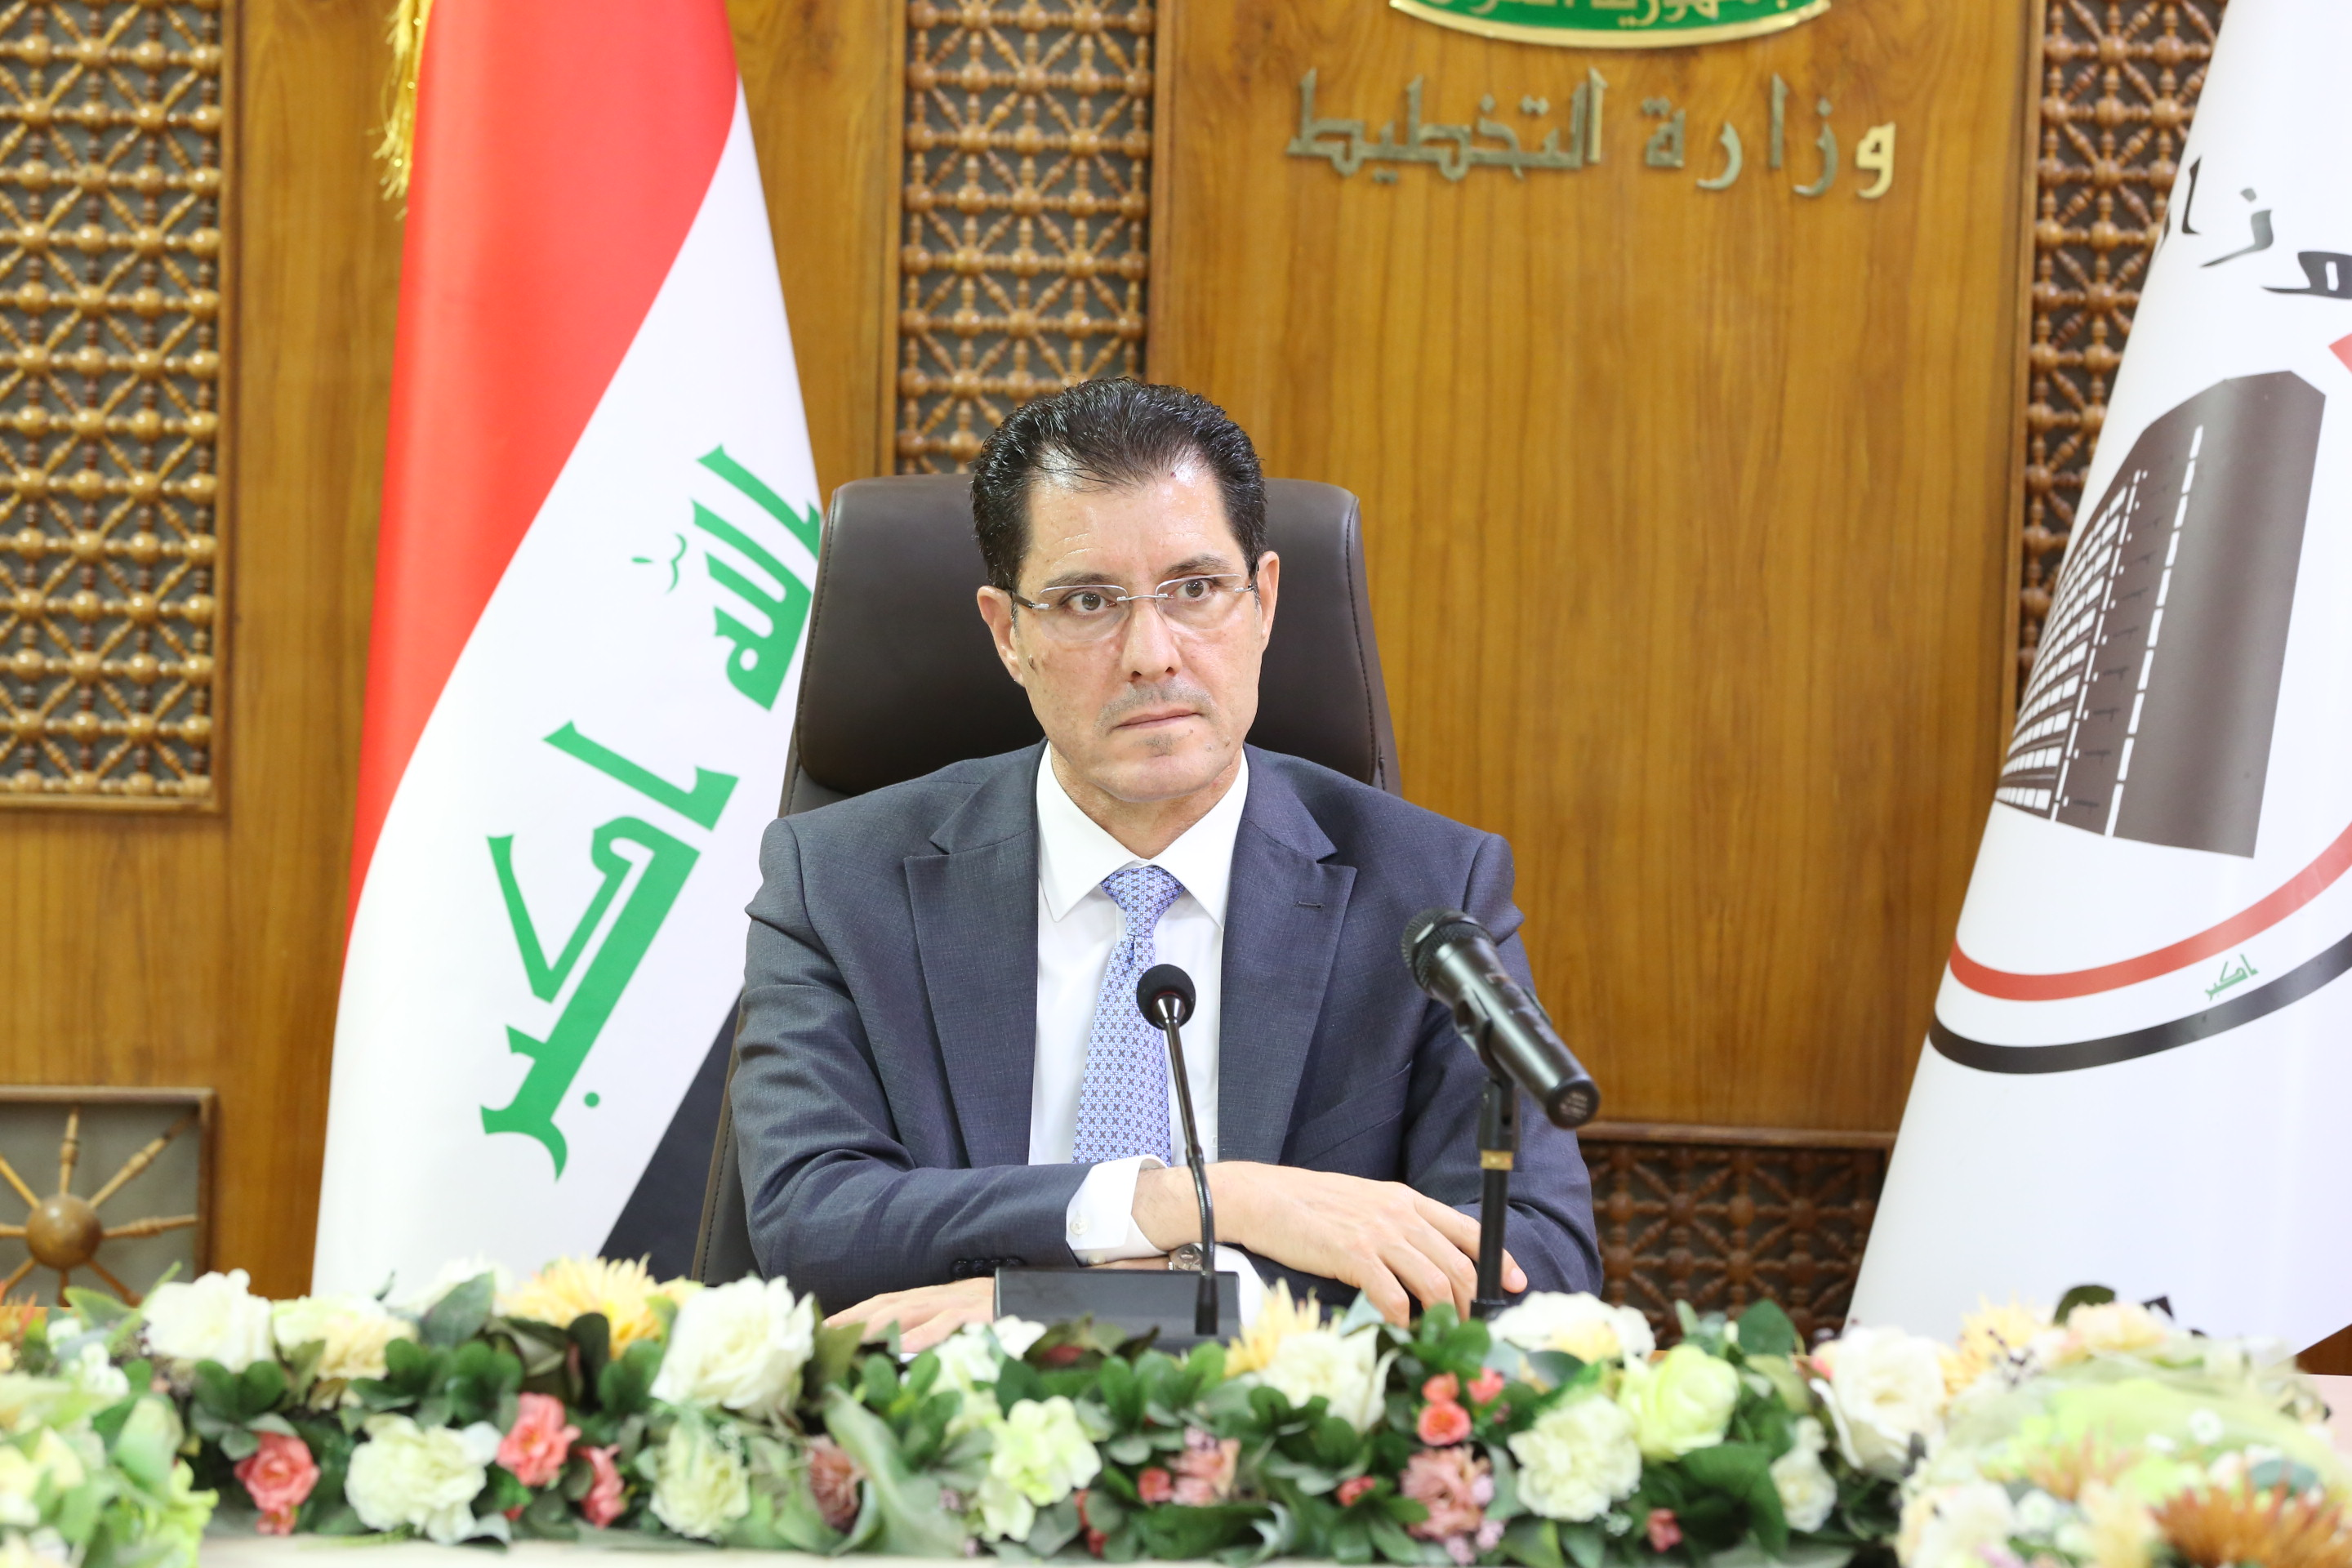 """Meeting of the Minister of Planning, Dr. Nuri al-Dulaimi on the Iraqi channel in the program """"outside the Fund"""" on 2019/7/7 15626521226aba66d0346d42abb1dd499bdd6c152c--1K9A8943"""